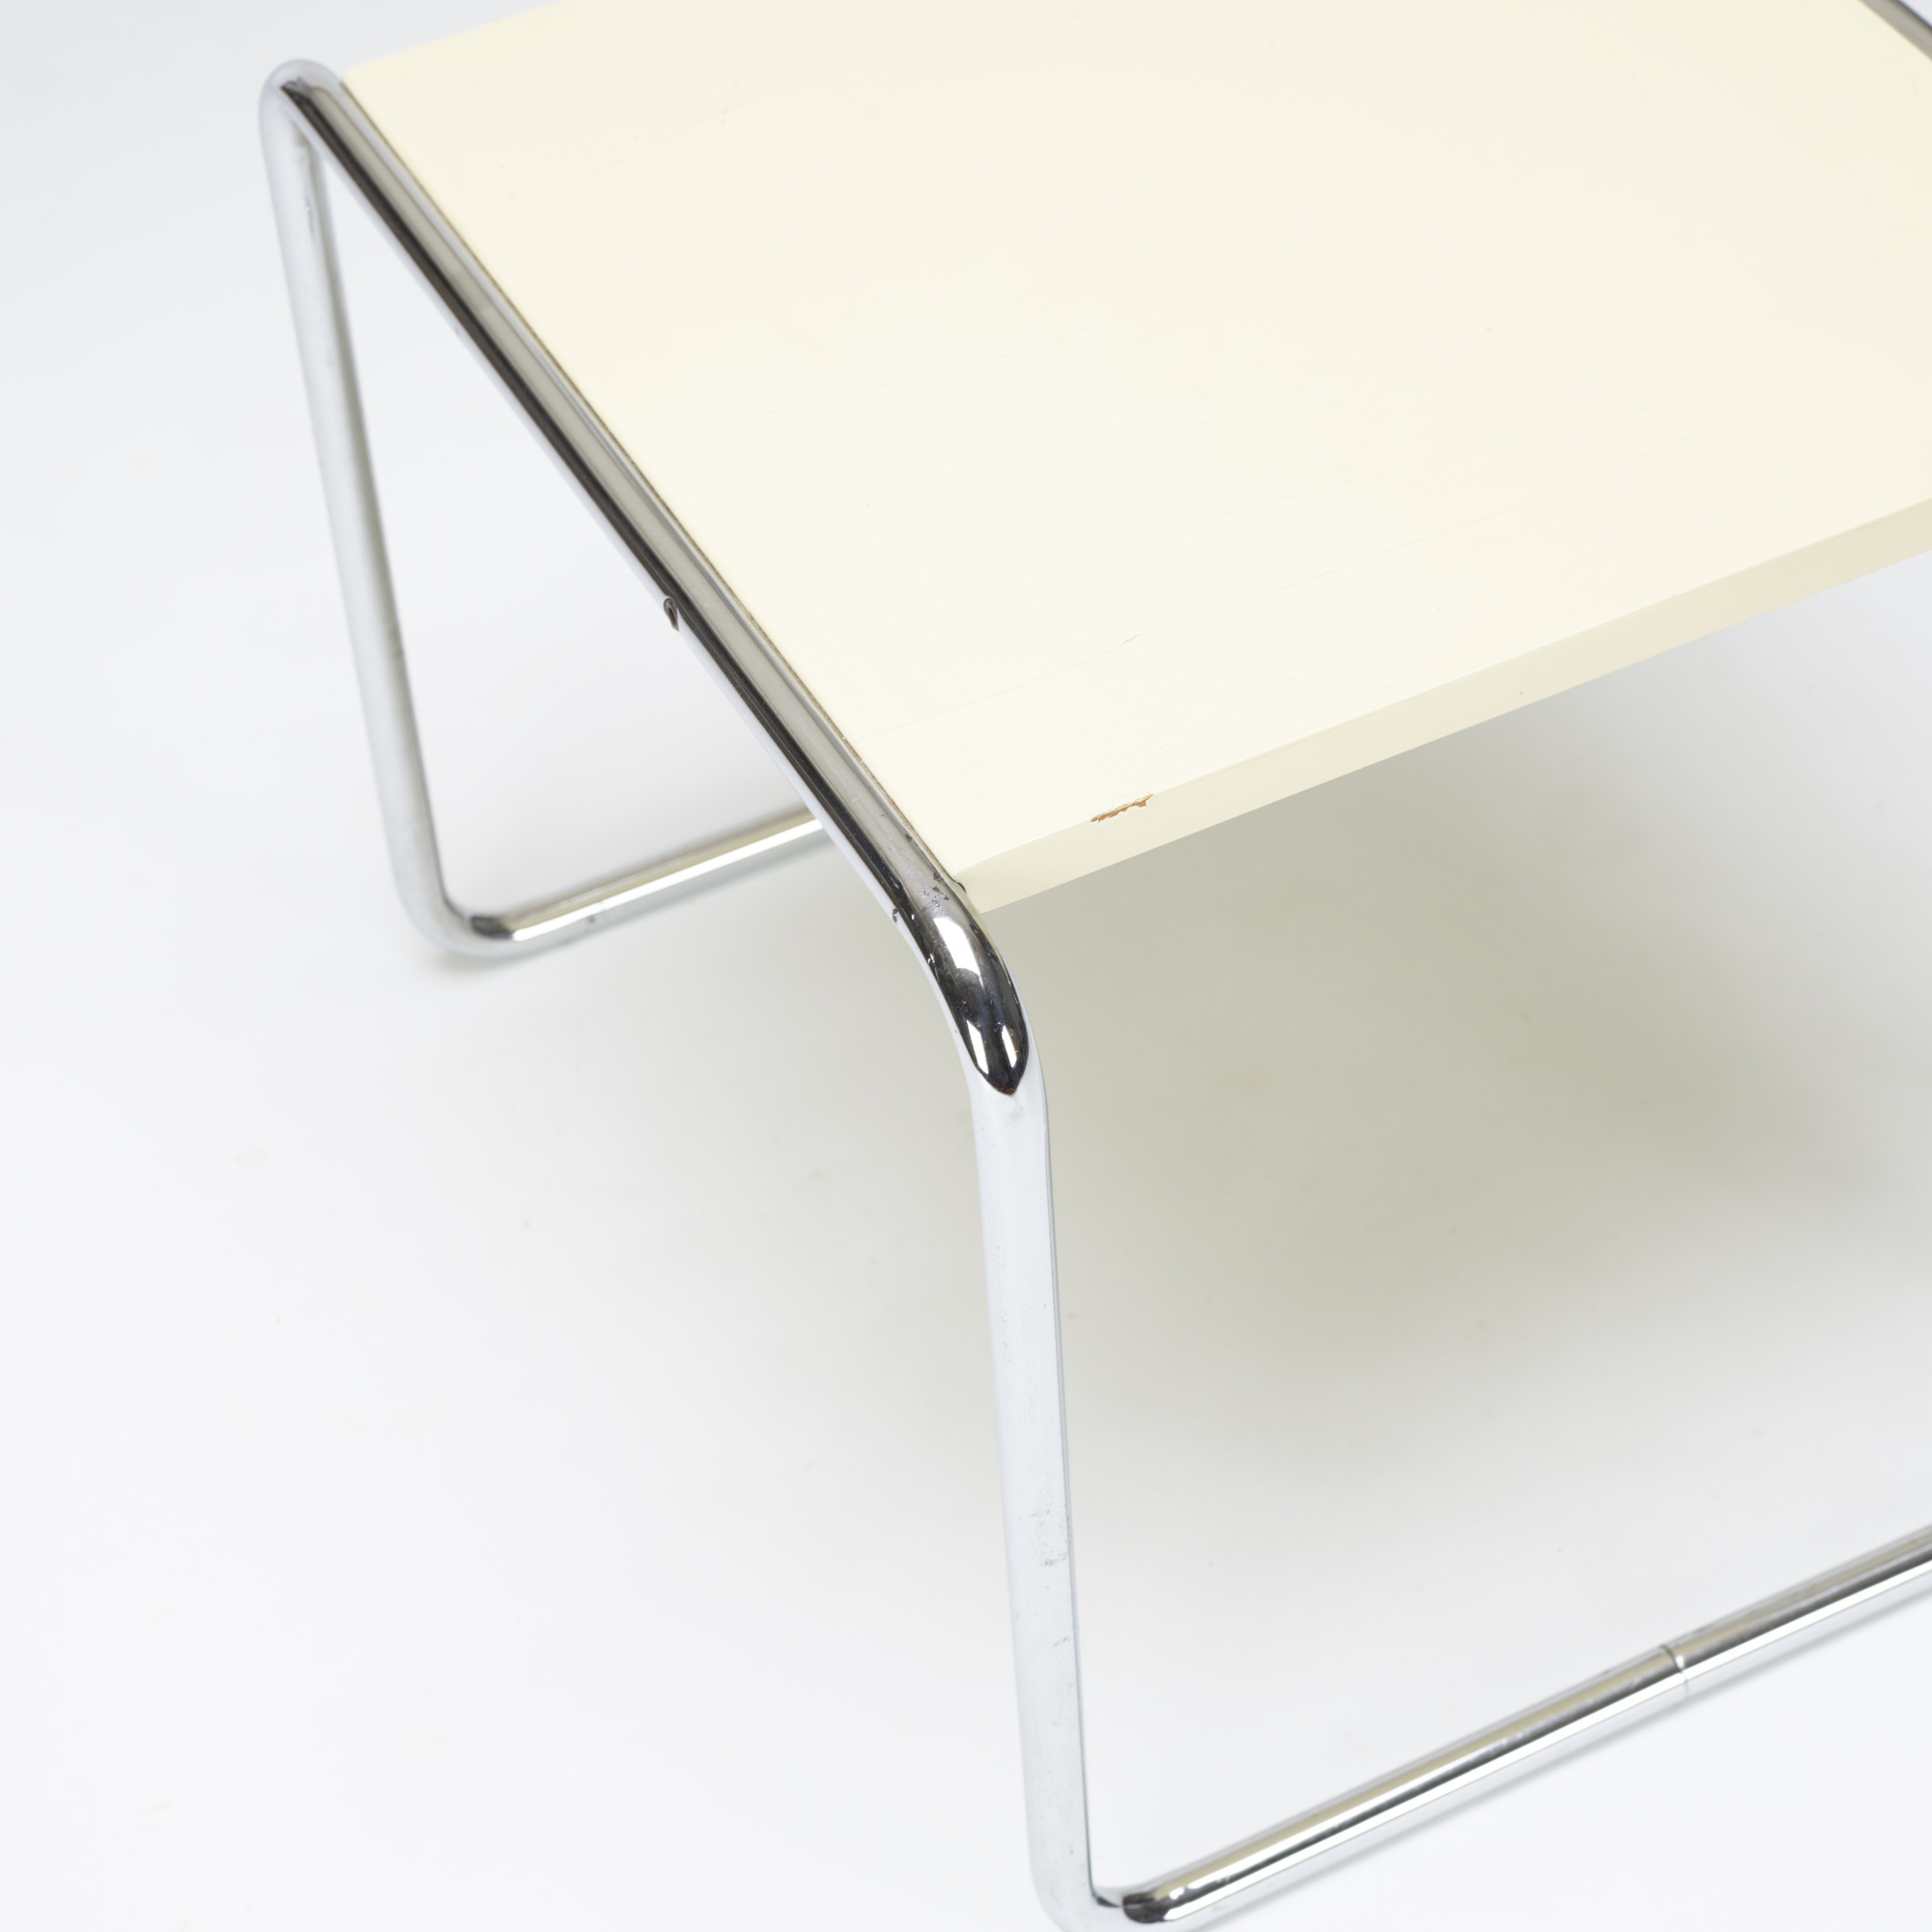 185: Marcel Breuer / occasional table, model B9 (2 of 2)